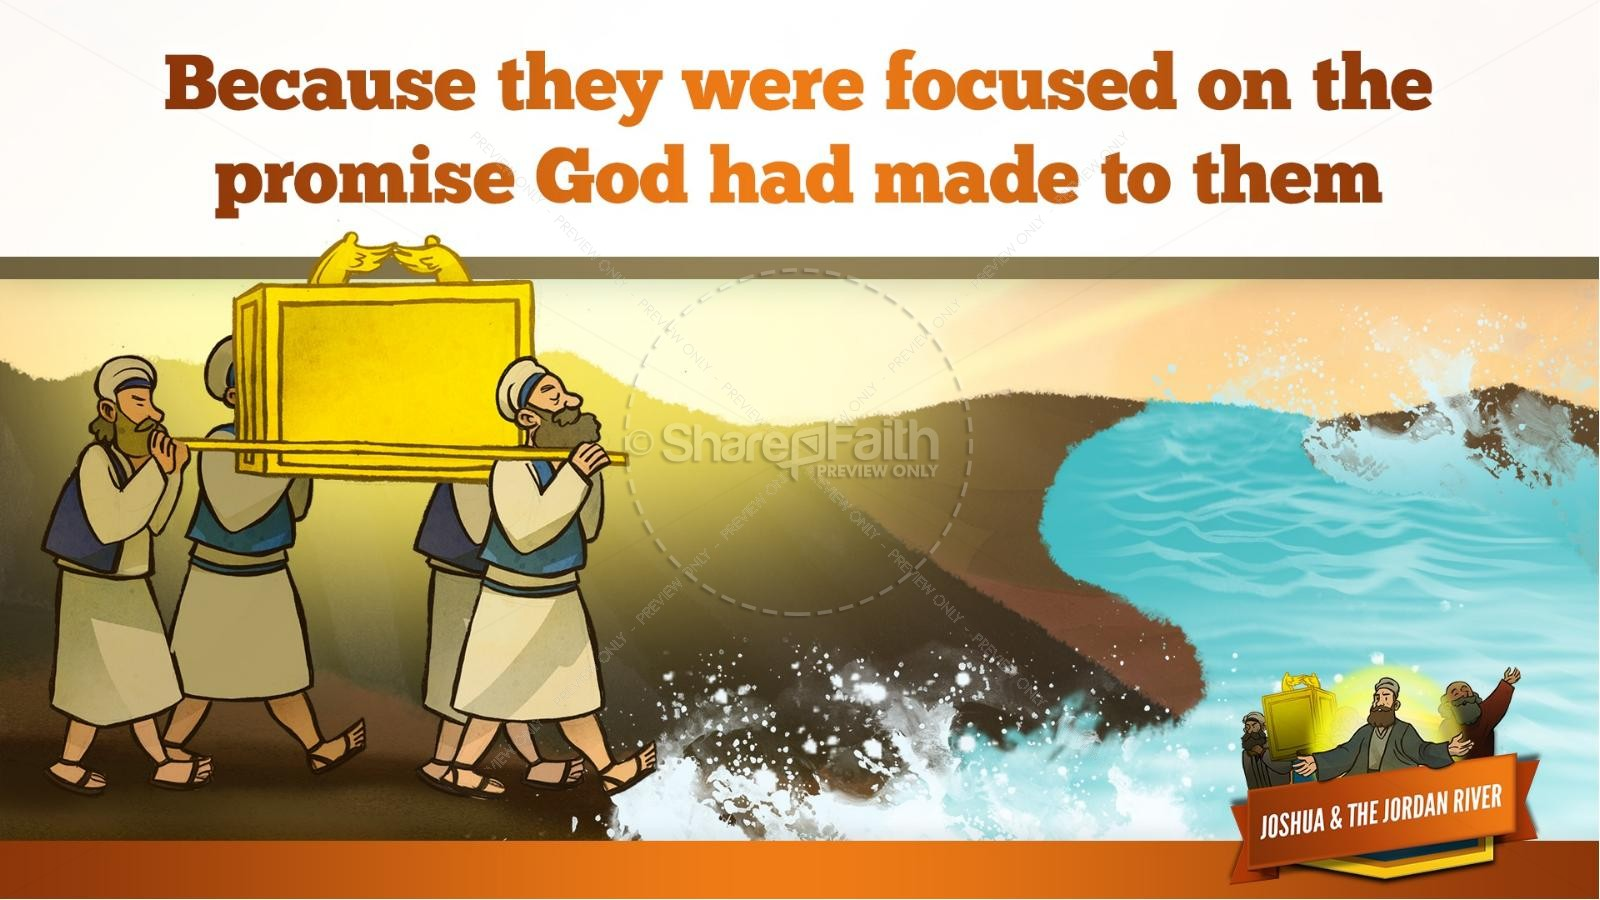 Joshua 3 Crossing the Jordan River Kids Bible Story | slide 24